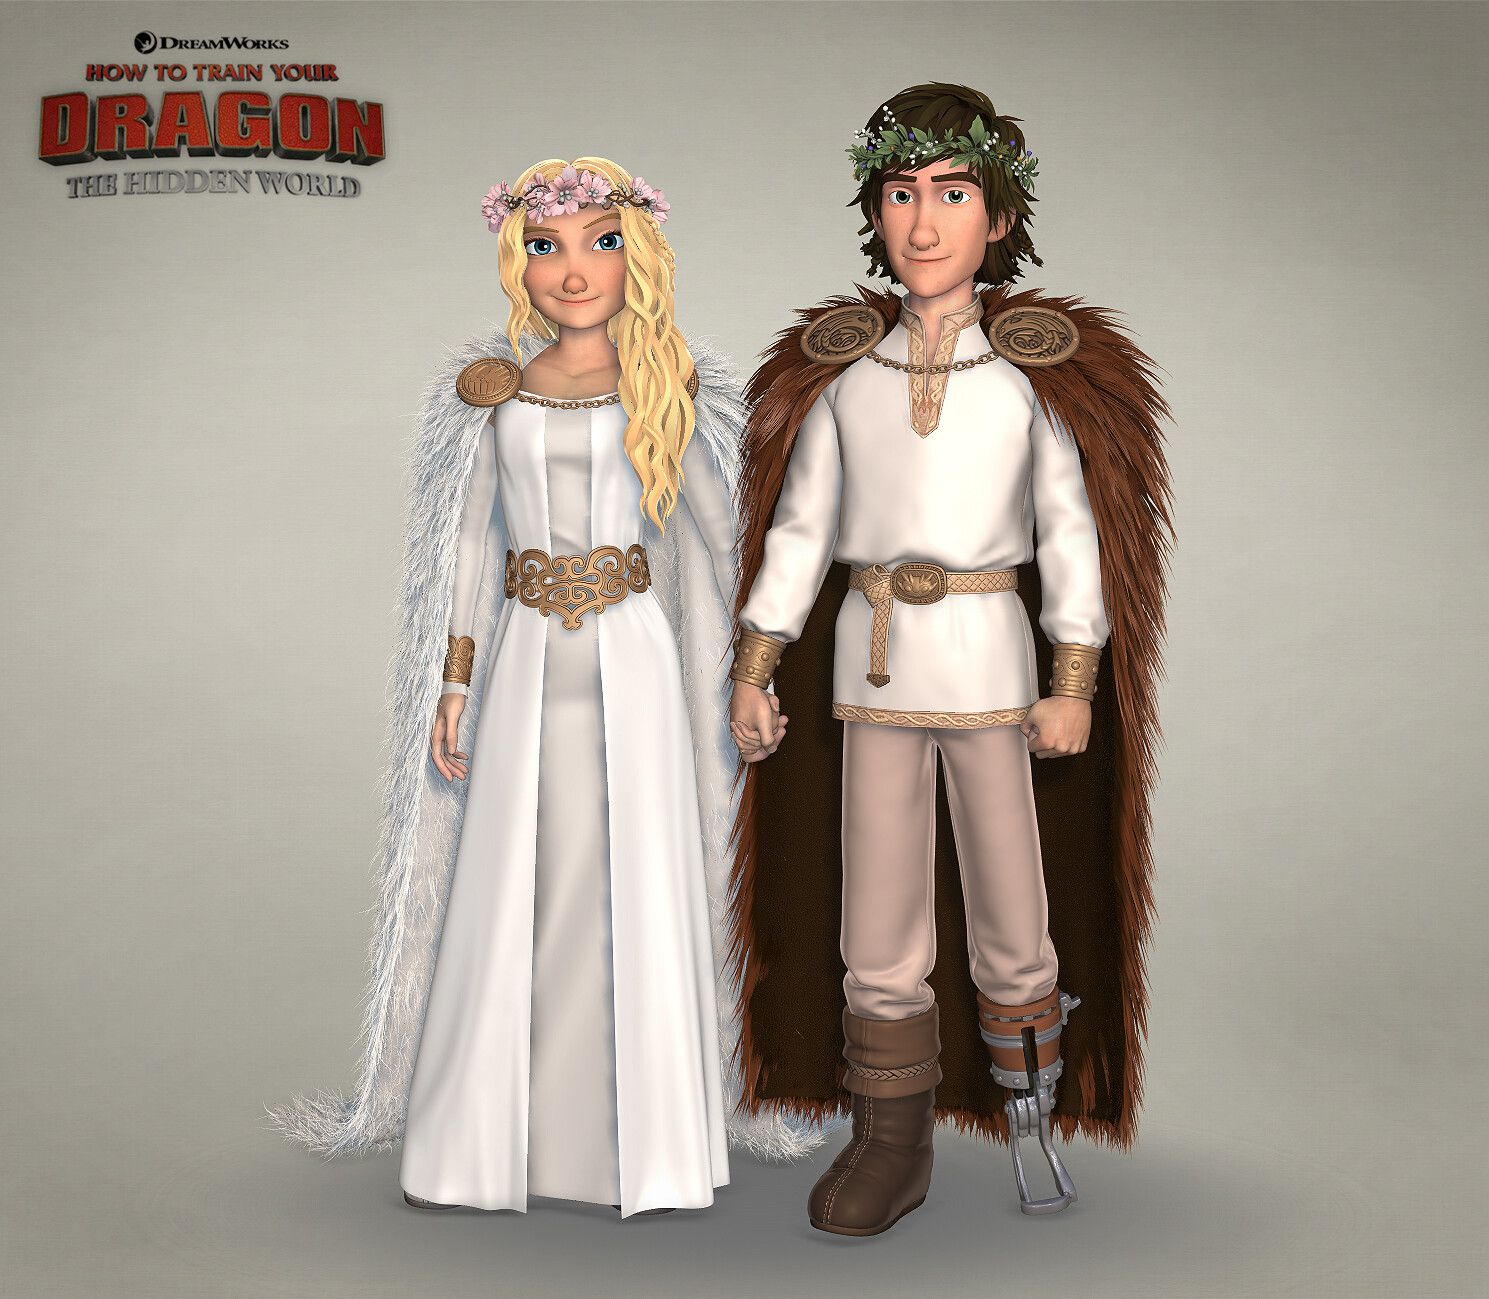 Hiccup Astrid S Wedding Dresses Min Yu Chang On Artstation At Https Www Artstation Com Artwork 4bke2q How To Train Your Dragon How Train Your Dragon Httyd